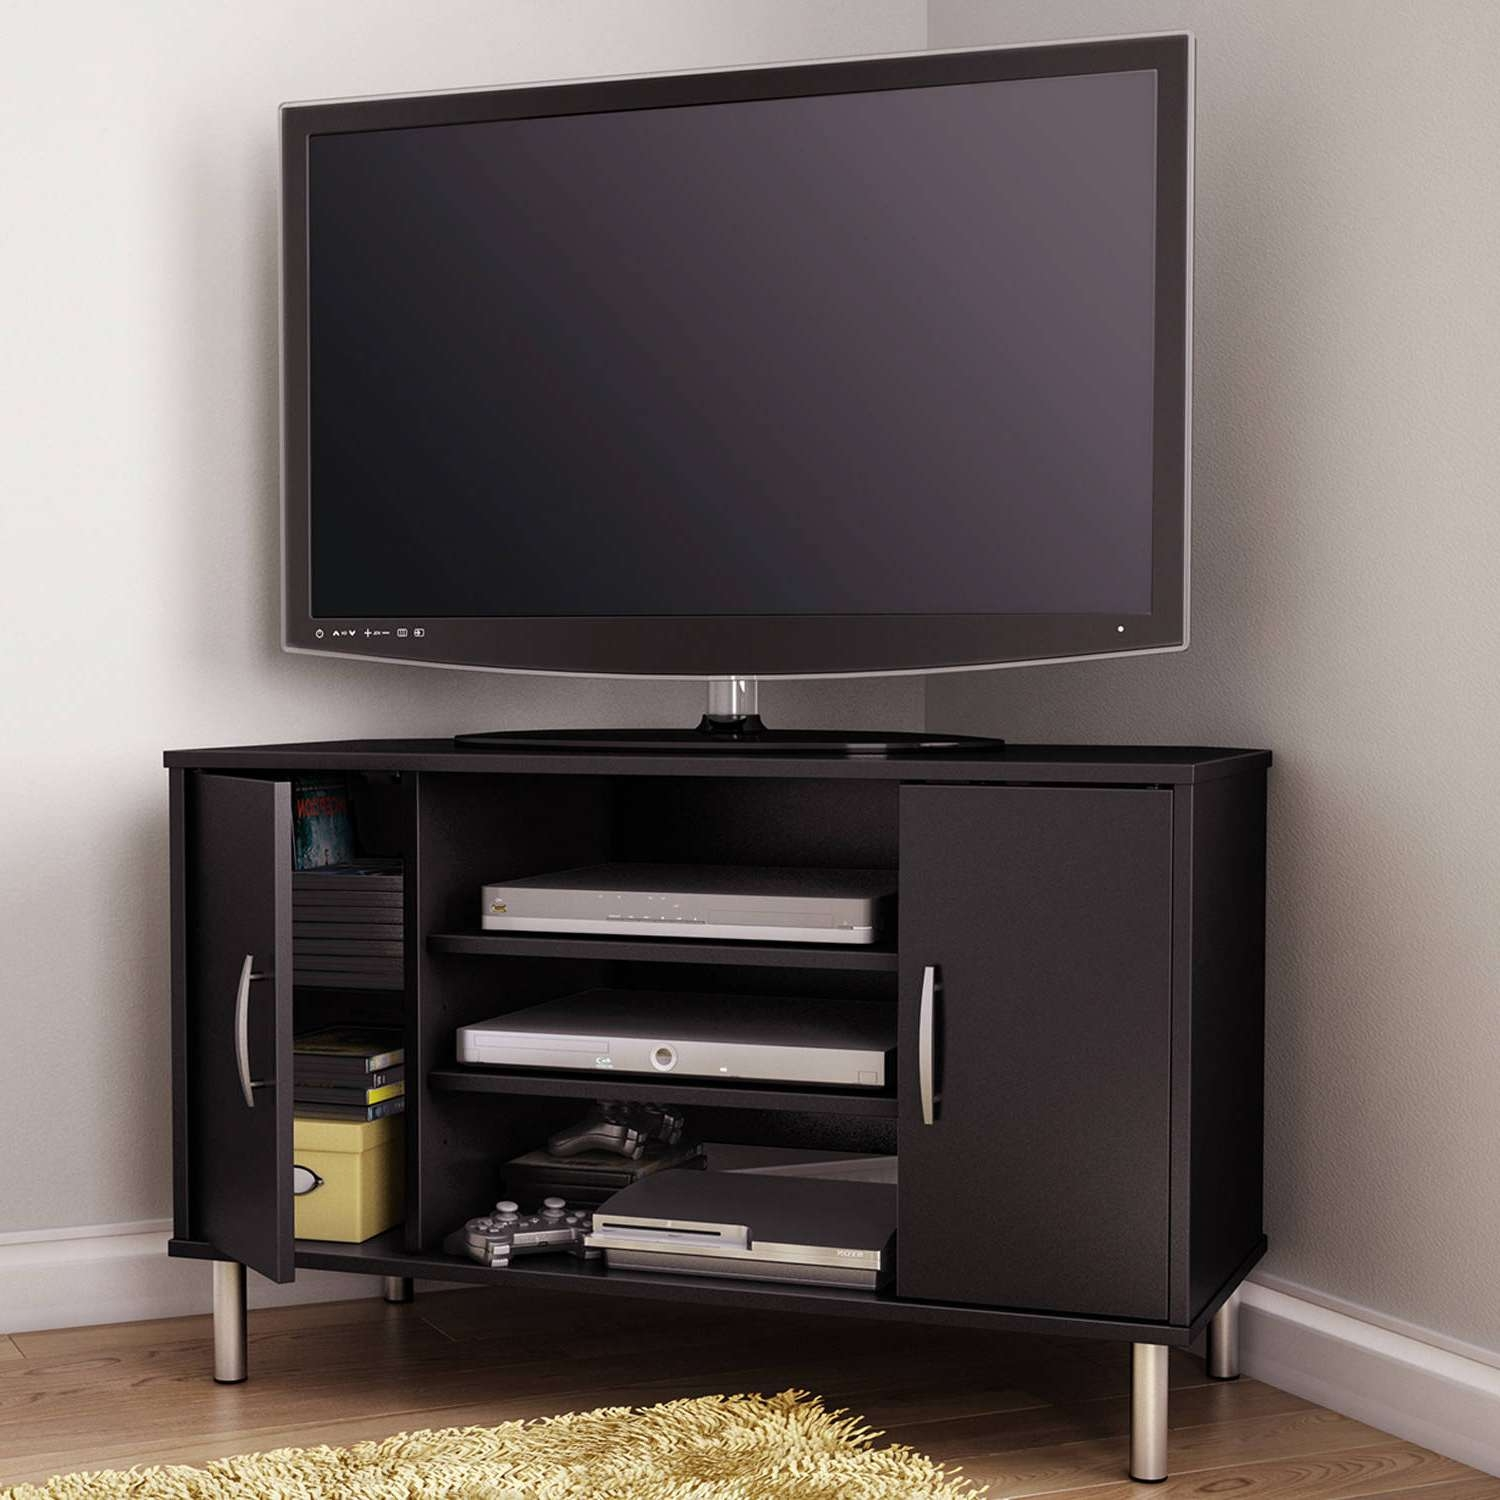 Corner Tv Stand Ikea – Corner Tv Stand Design With Various Cabinet Within Black Corner Tv Cabinets (View 4 of 20)